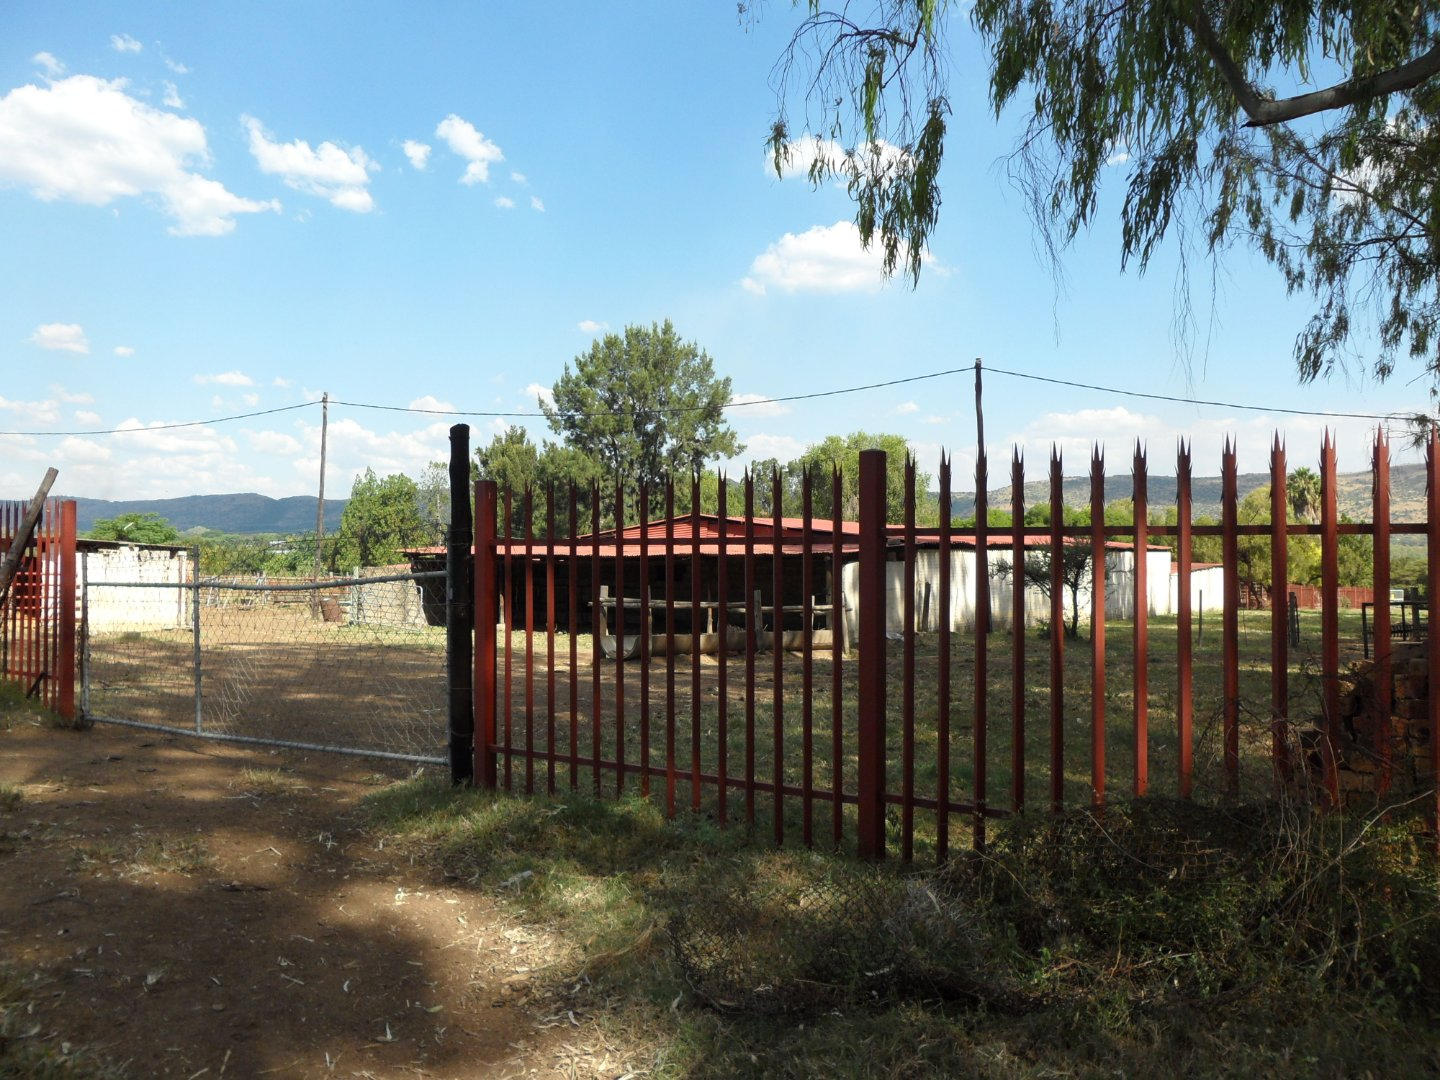 Kameeldrift West property for sale. Ref No: 13755943. Picture no 28